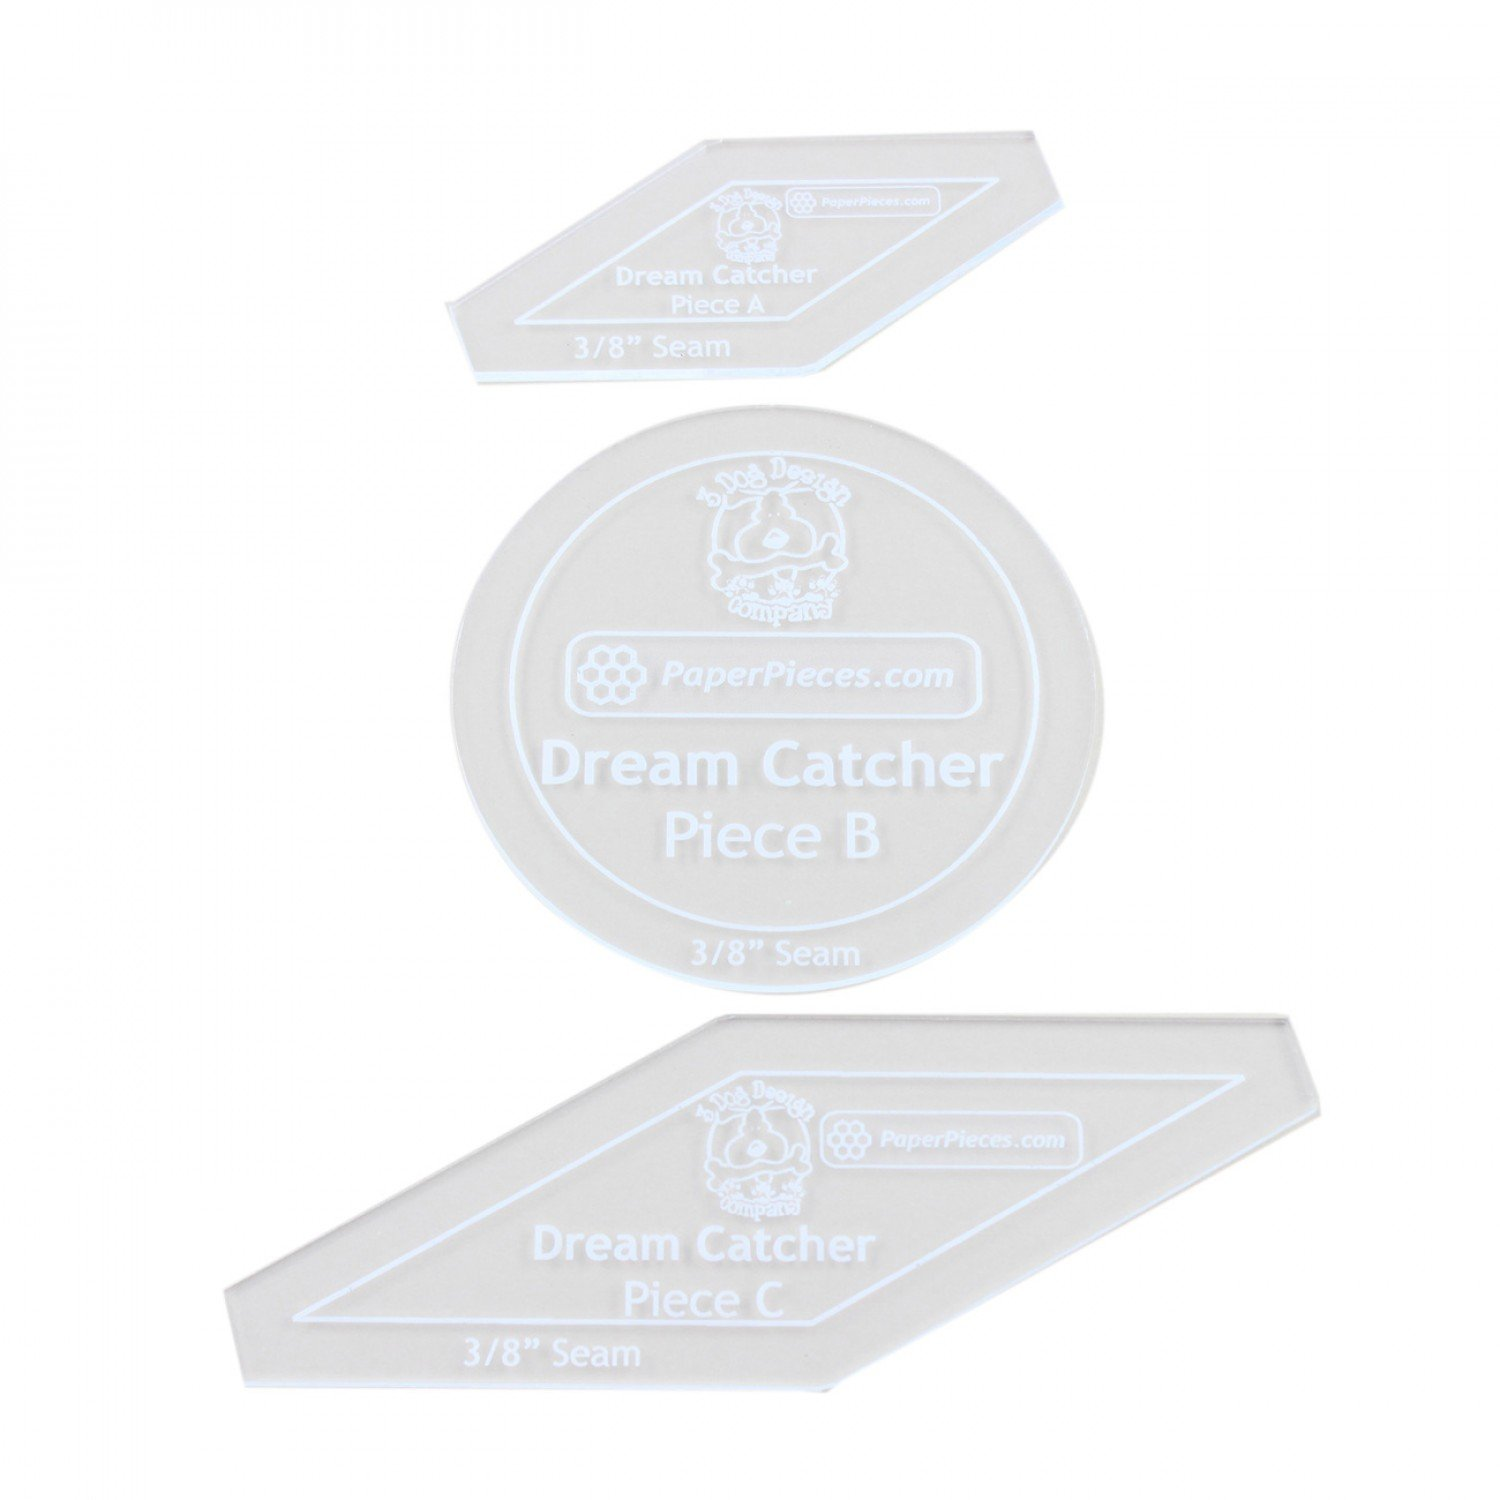 acrylic fabric cutting template for dream catcher complete set